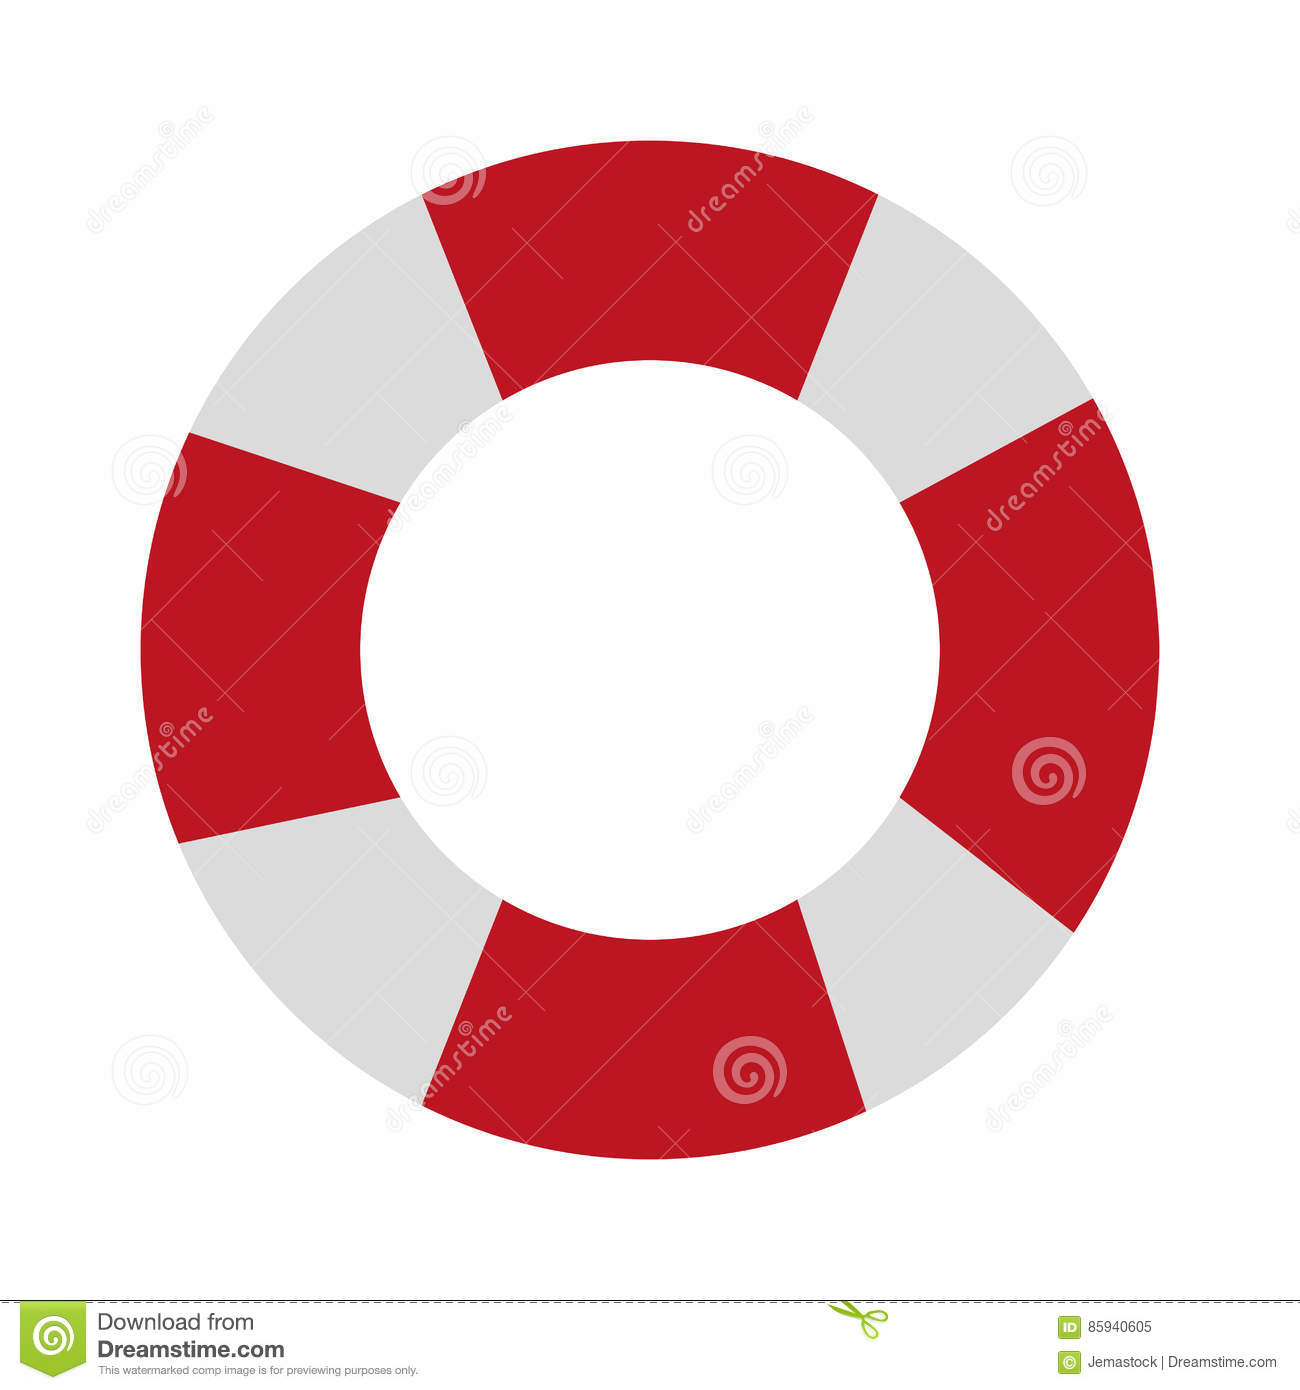 7423c052c721 Lifeguard float icon over white background. colorful design. vector  illustration. More similar stock illustrations